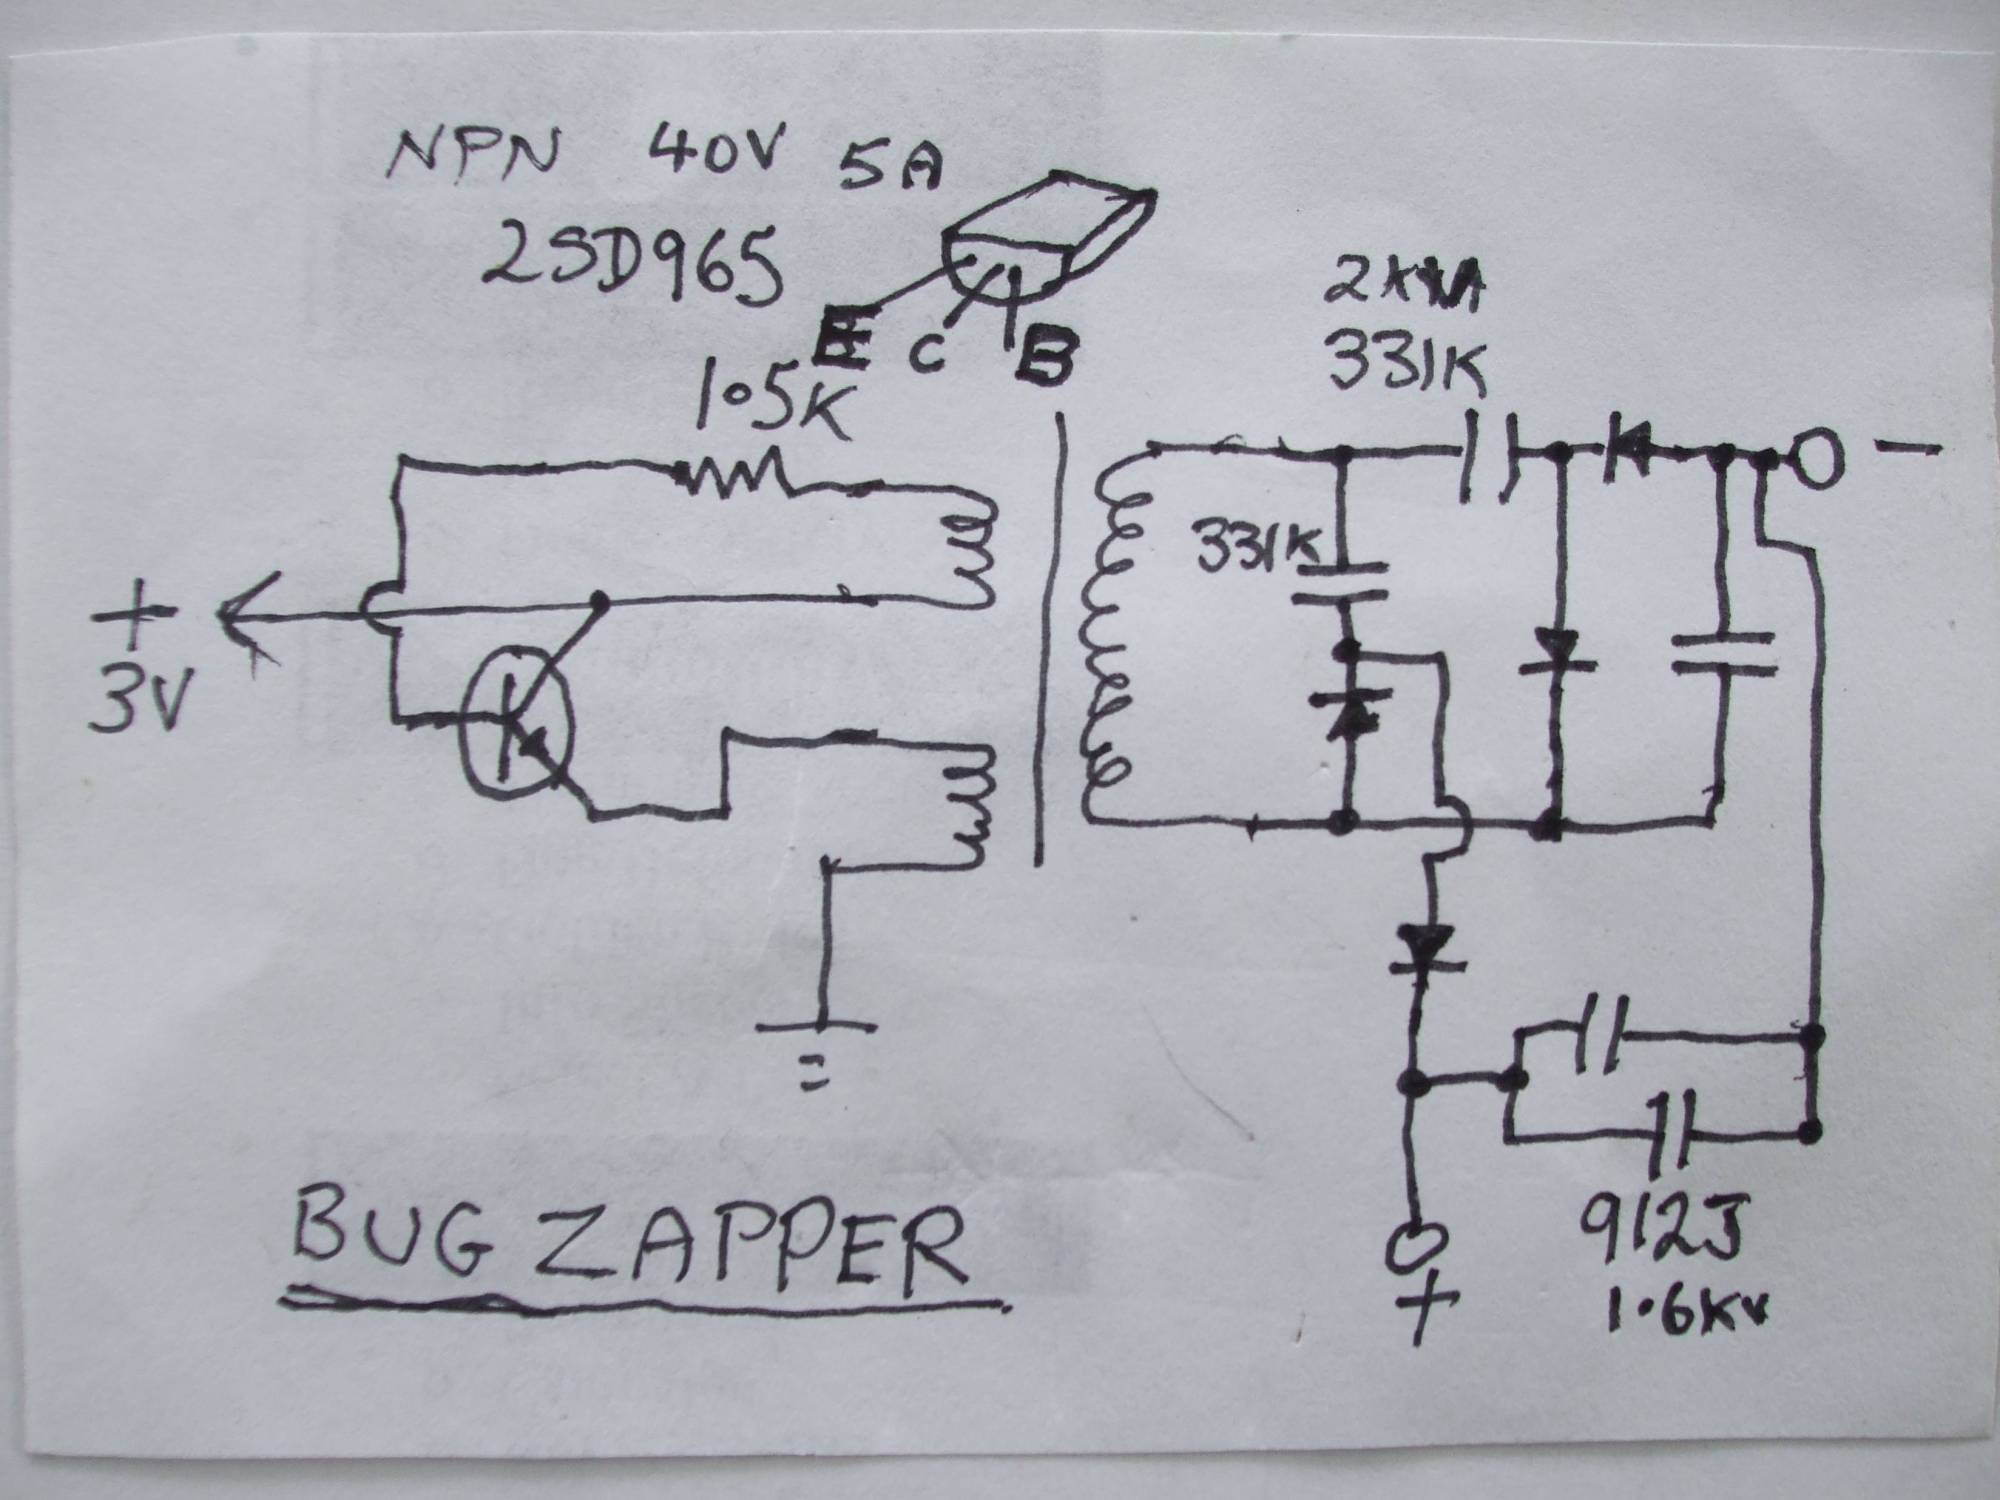 hight resolution of  zapper circuit diagram stinger bug documents enter image description here